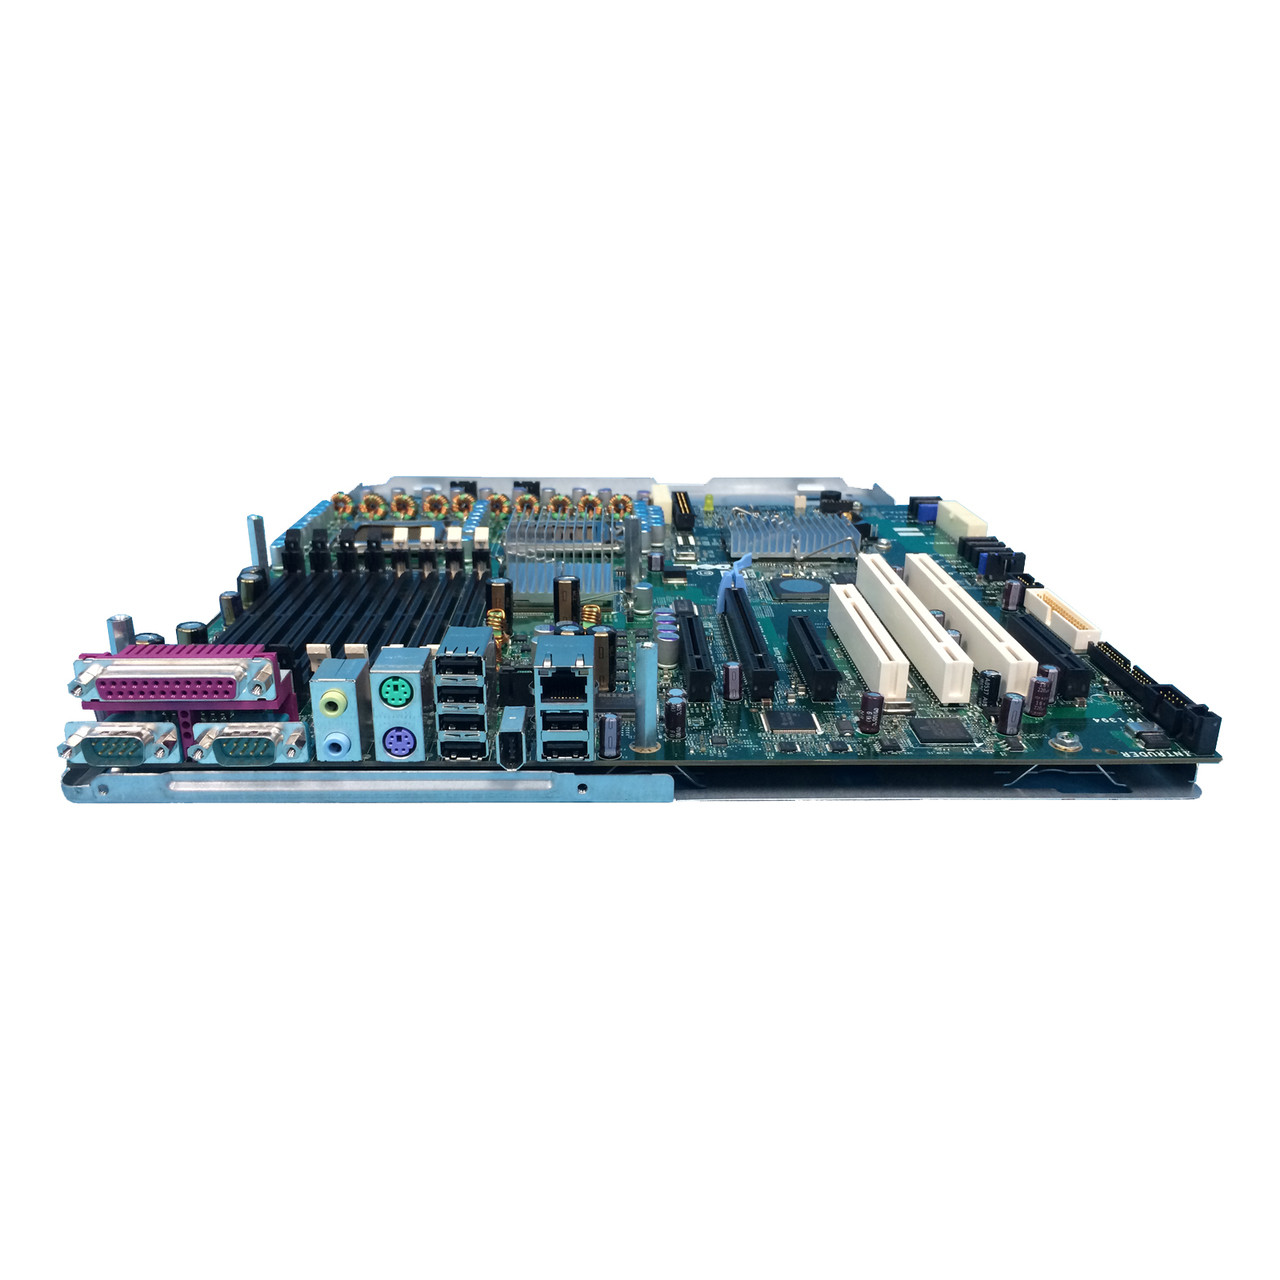 hight resolution of dell my171 precision 690 system board precision 690 motherboard dell laptop power supply pinout wiring diagram for dell 690 power supply